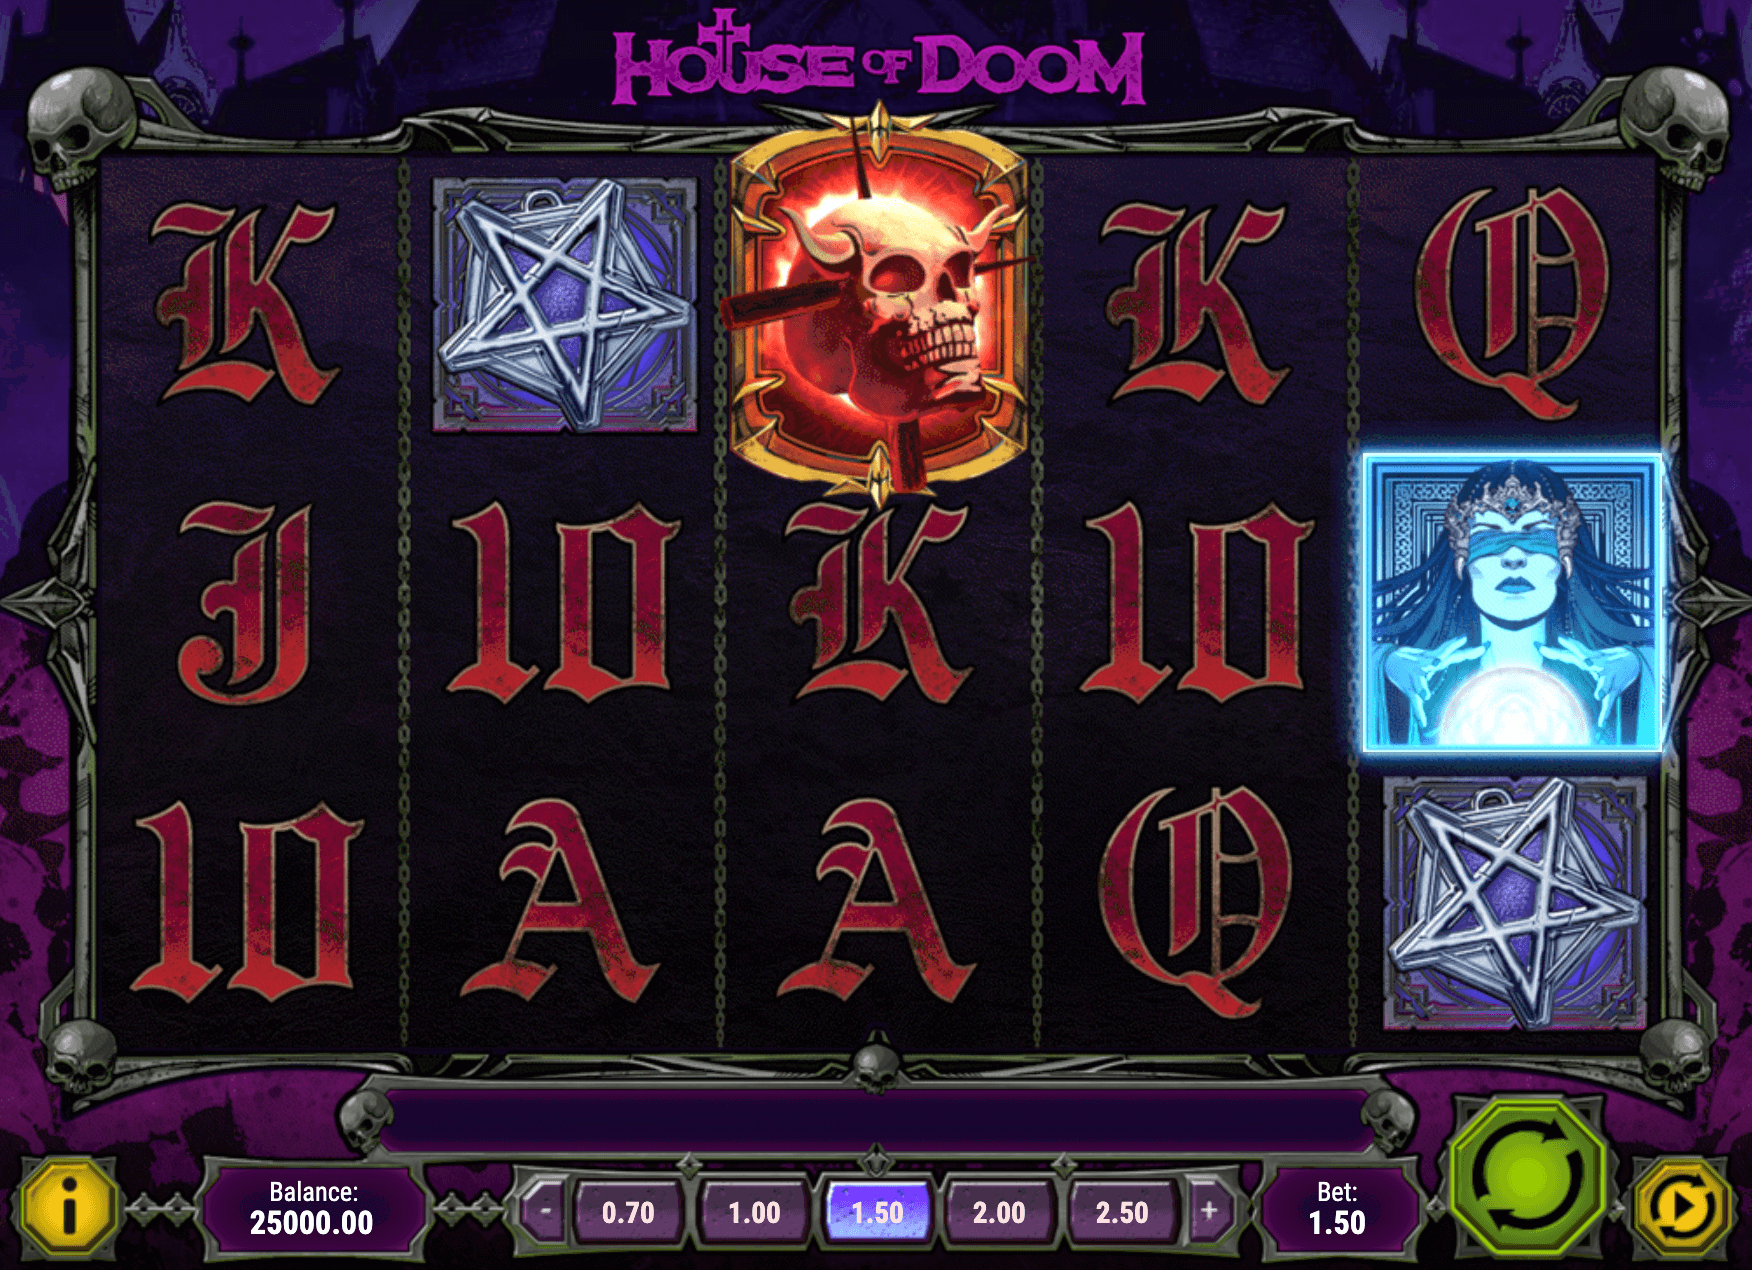 House of Doom Online Slot